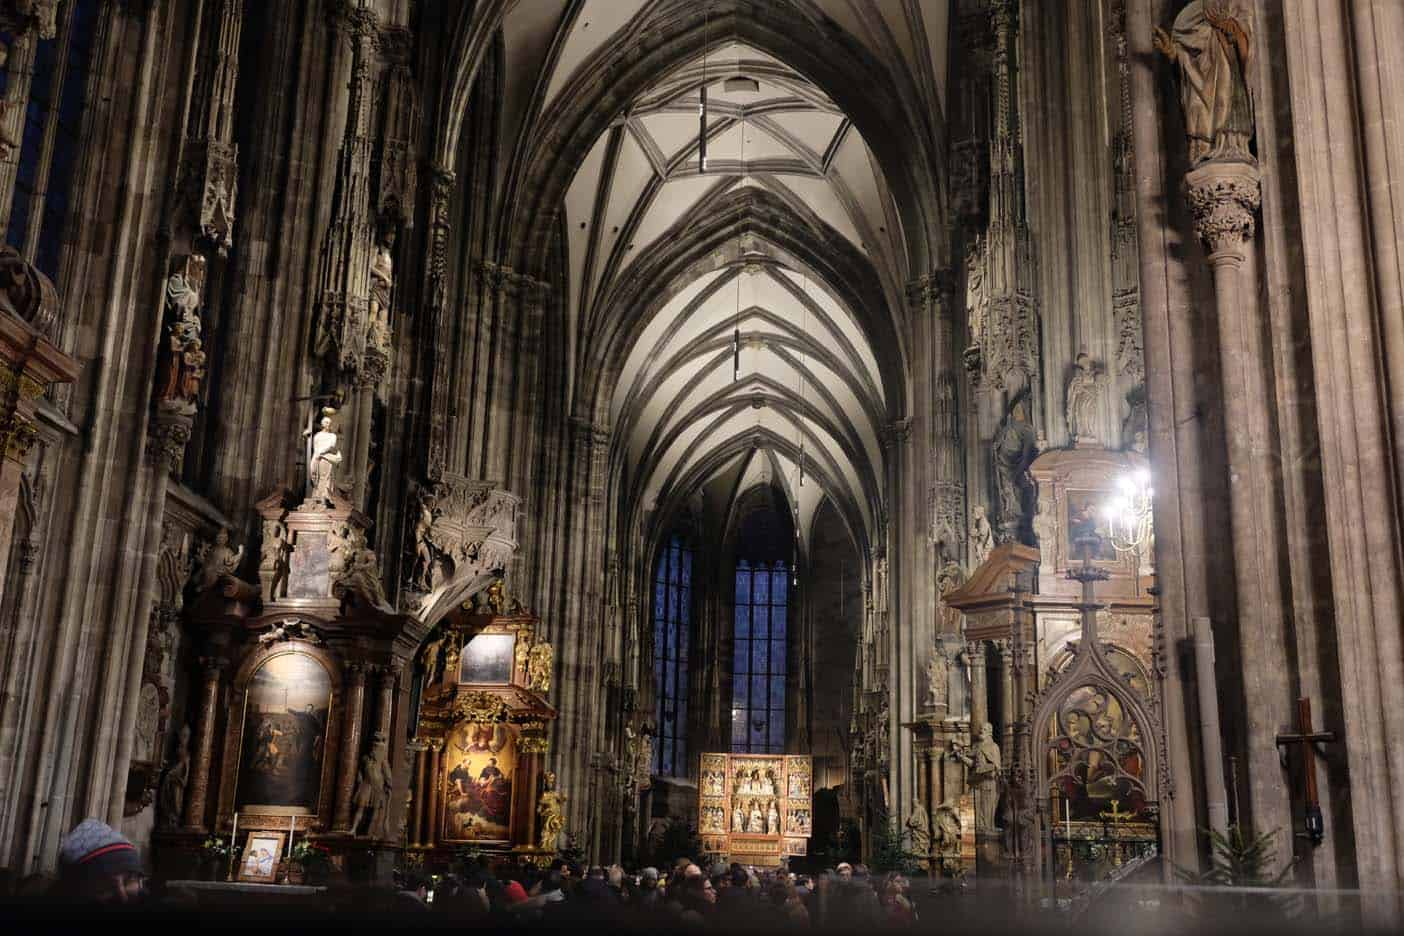 Stephansdom wenen